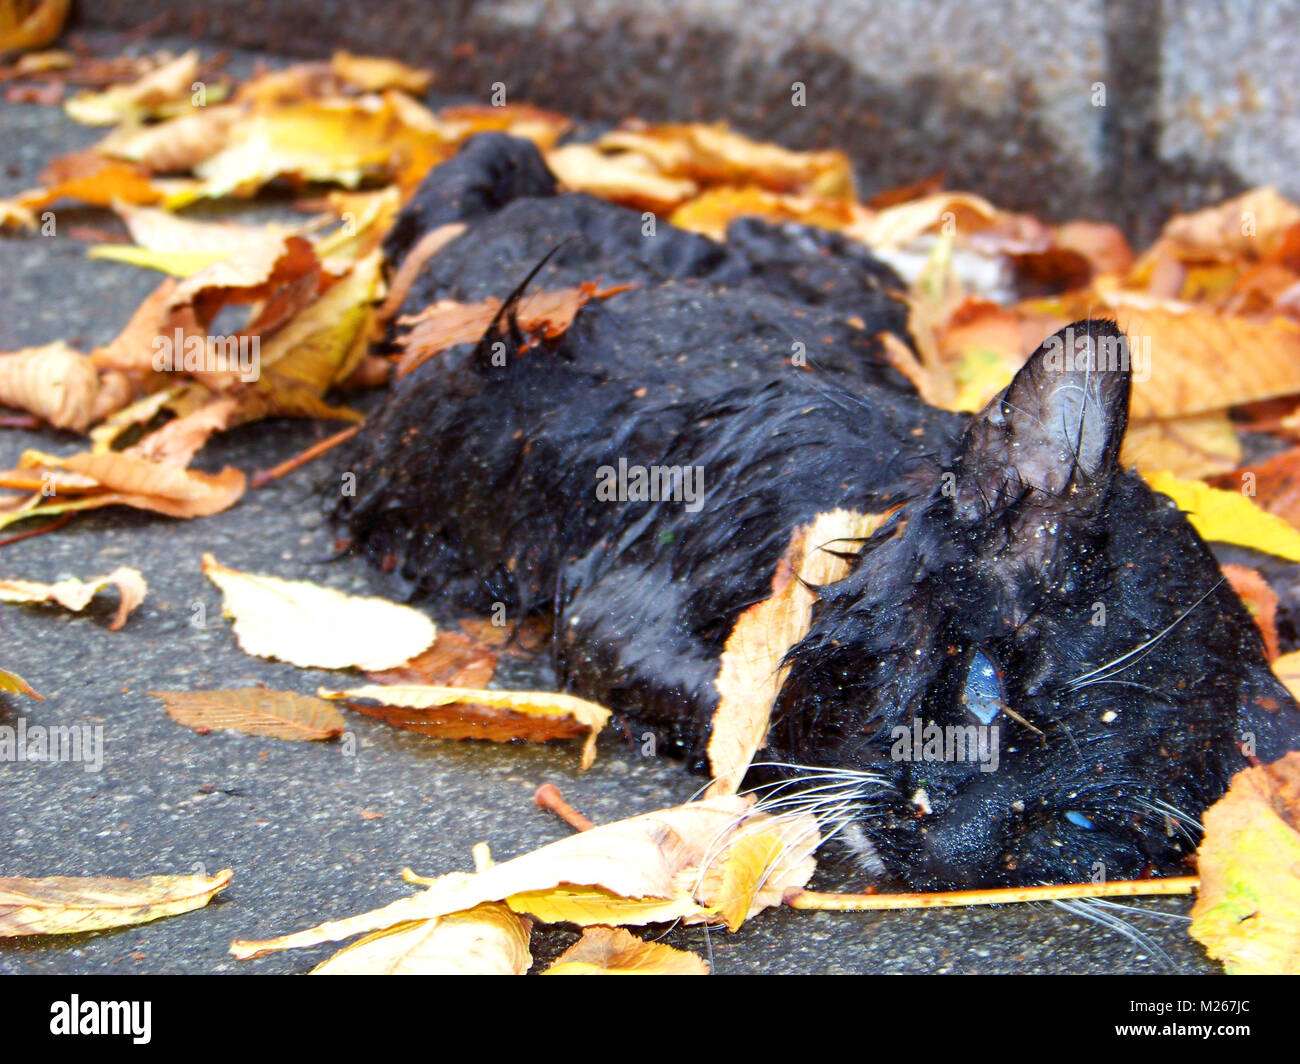 Frozen black cat's corpse in the fallen leaves close-up - Stock Image